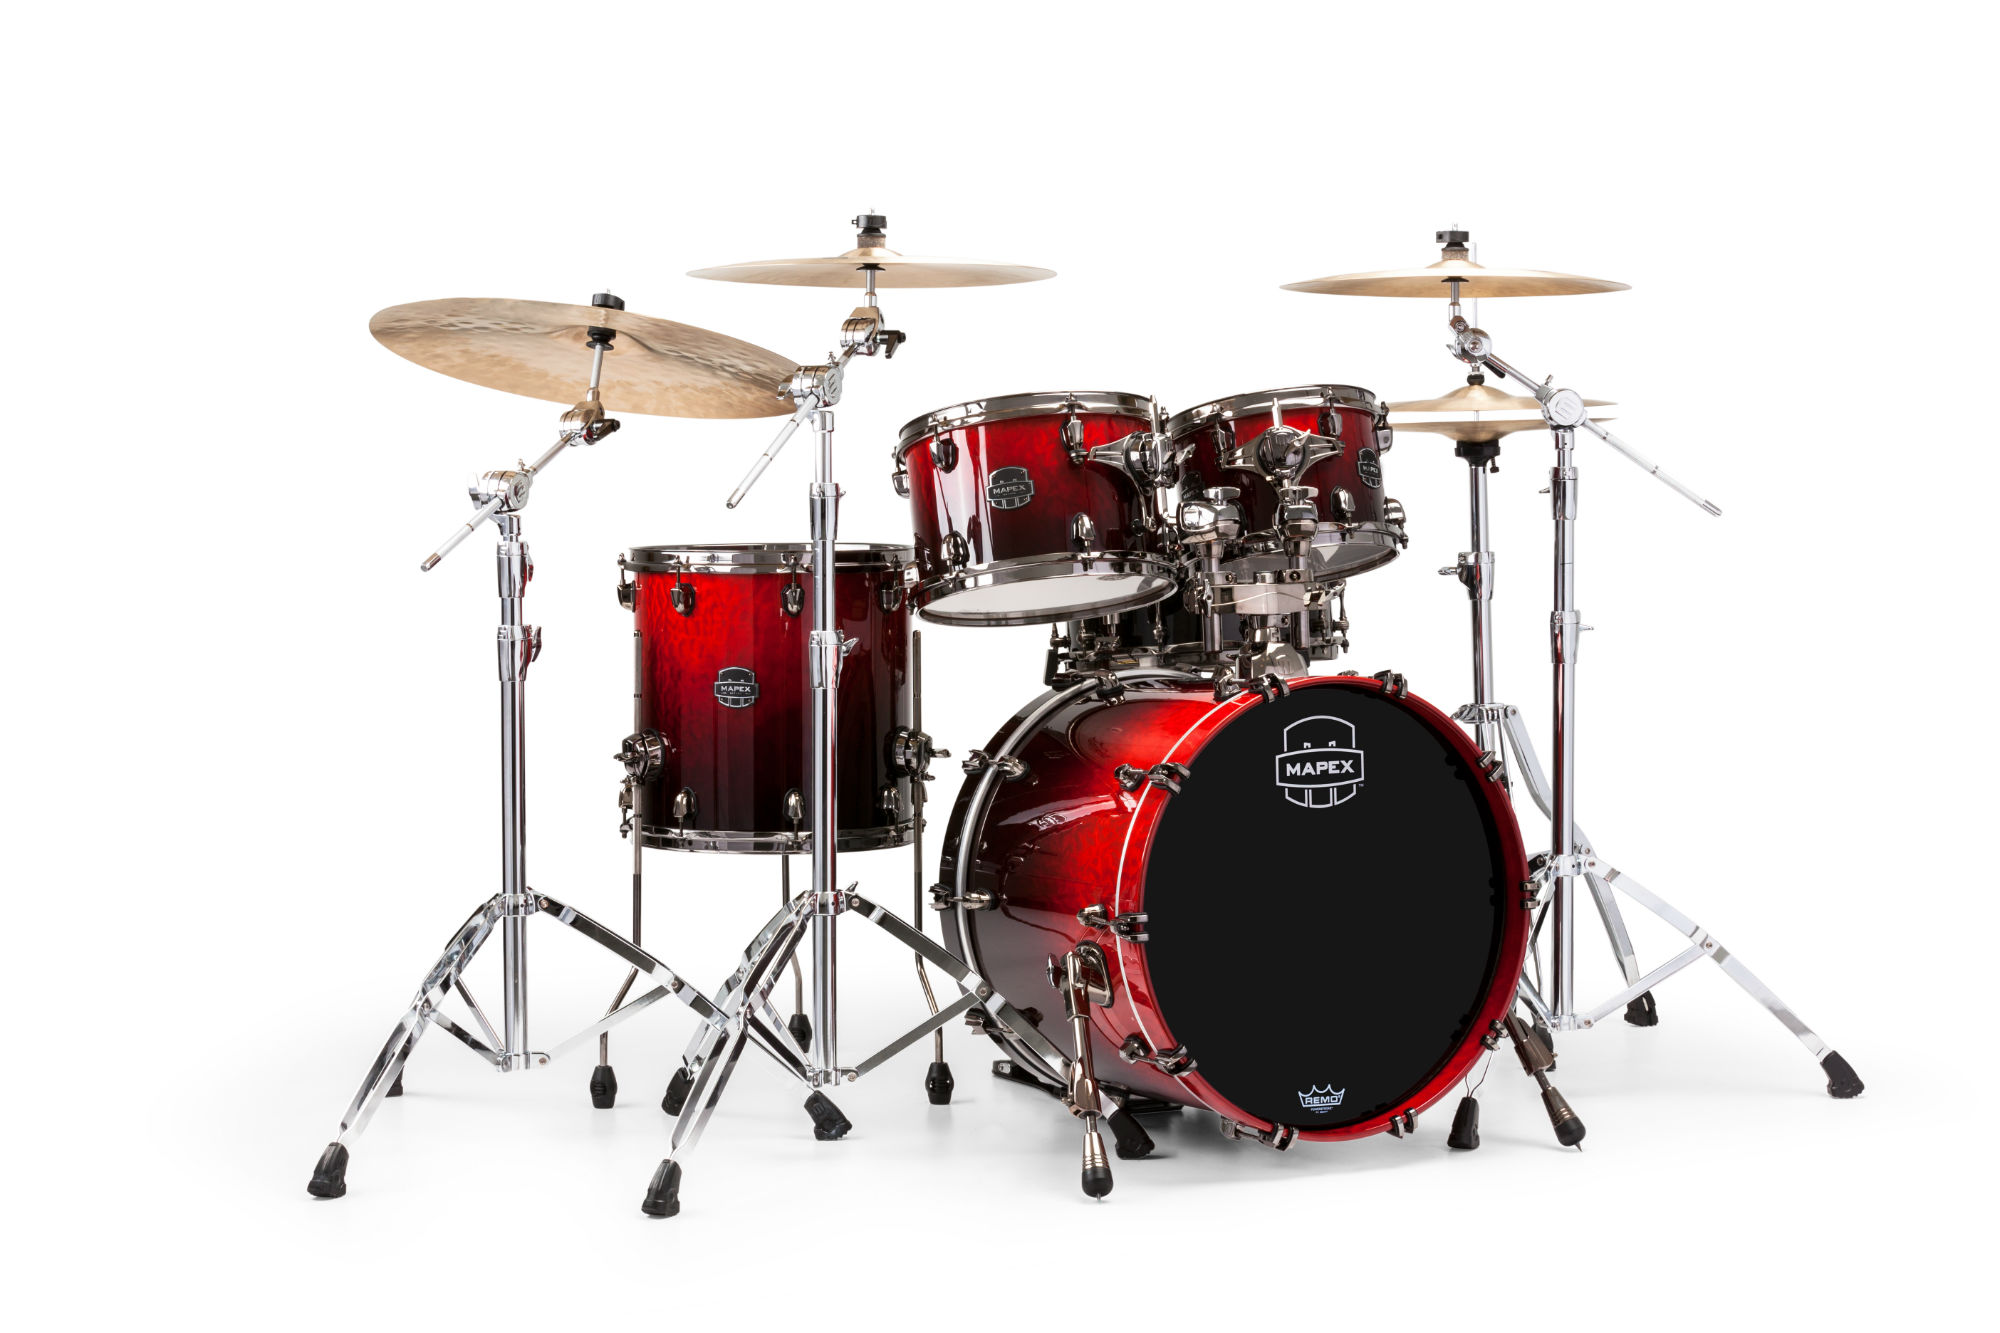 Mapex Saturn V MH Exotic Fusion 4-piece shell pack with SONIClear Edge - SV504XBKLE - Cherry Mist Maple Burl